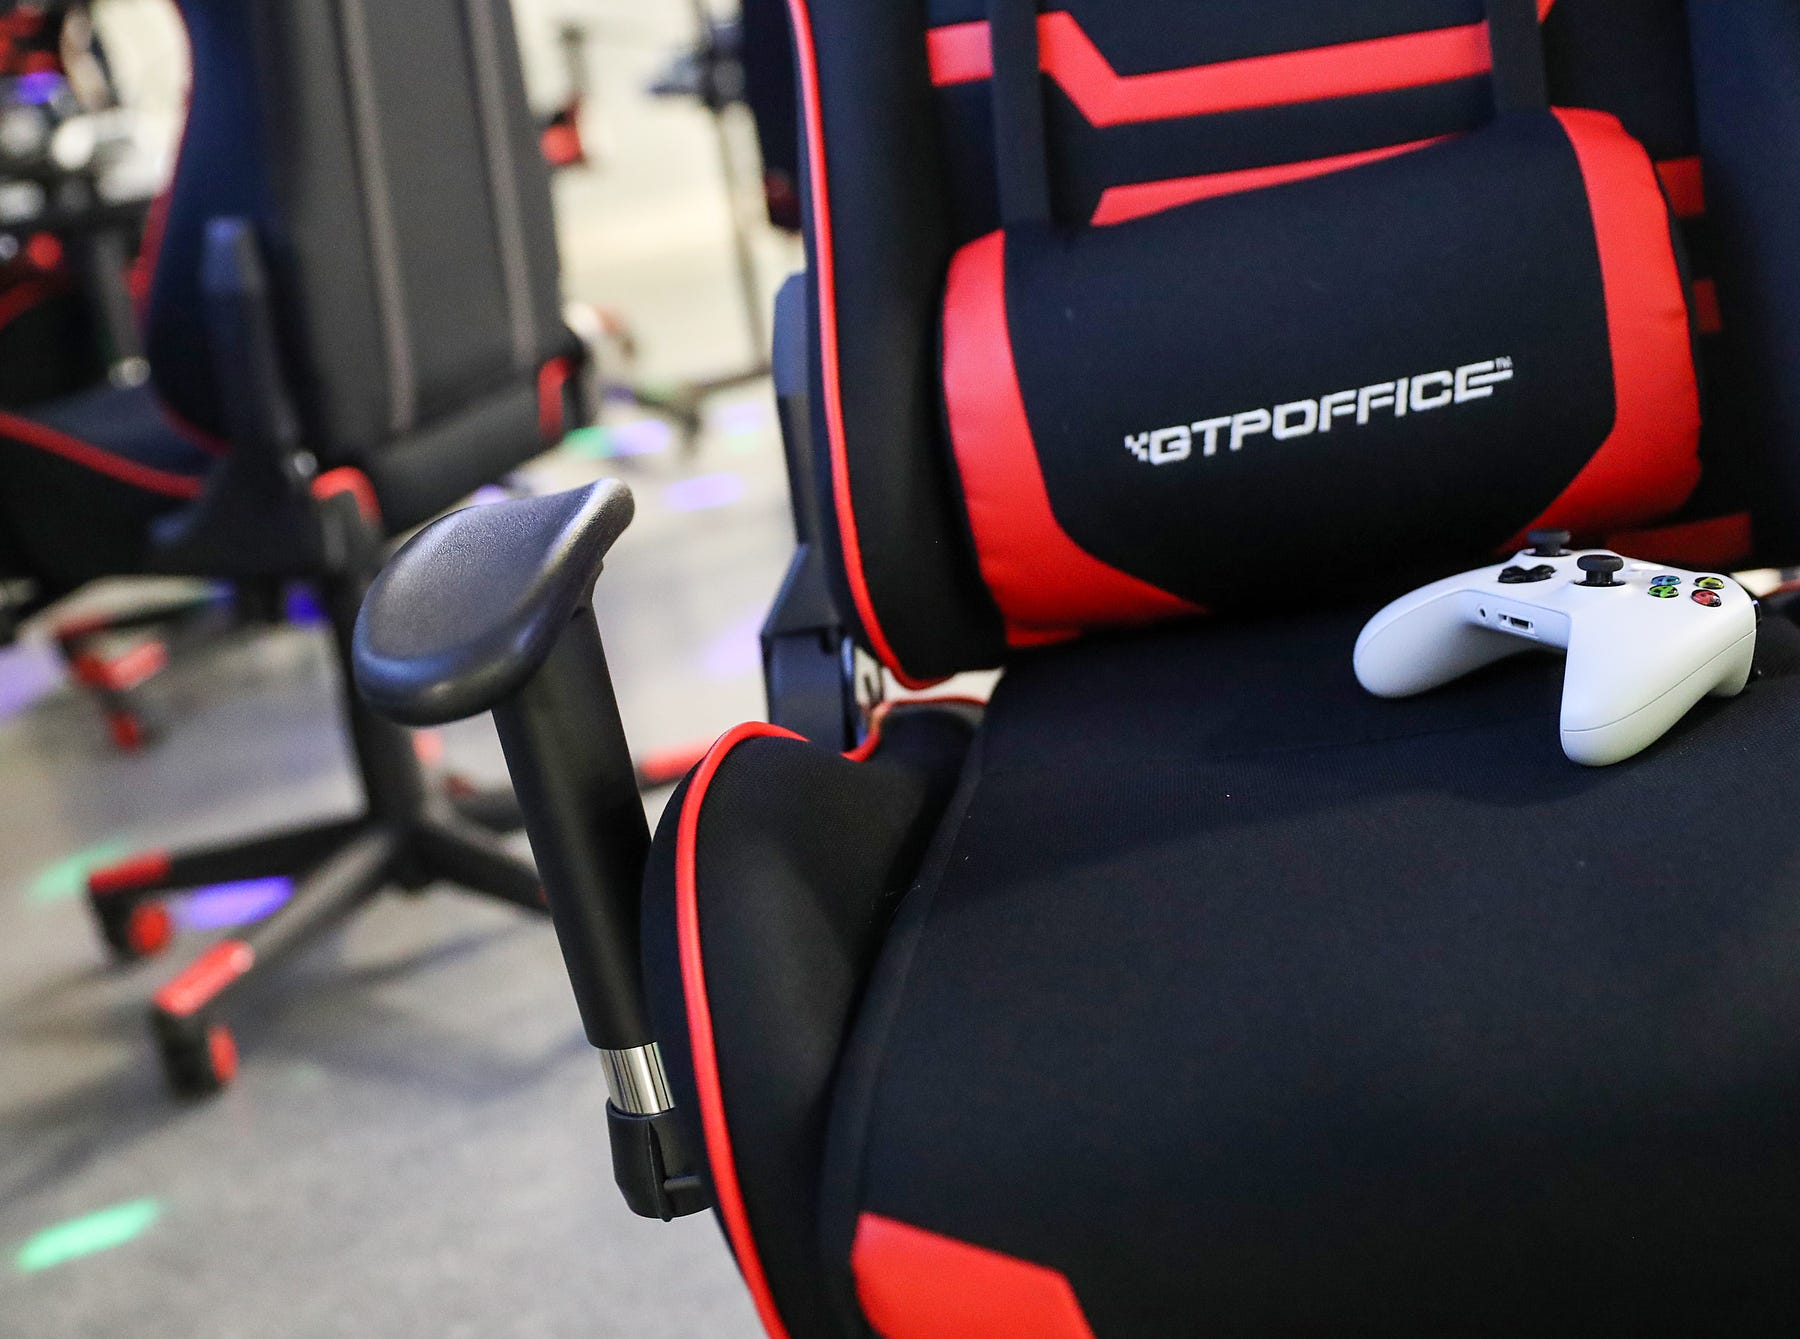 A gaming chair and controller are seen during an Evolve Youth Sports practice at the Player One arena in Carmel, Ind., Thursday, Jan. 24, 2019. Scott Wise, original founder of Scotty's Brewhouse, has partnered with Player One Esports for his next venture, a video game sports league that has attracted around 200 kids so far.